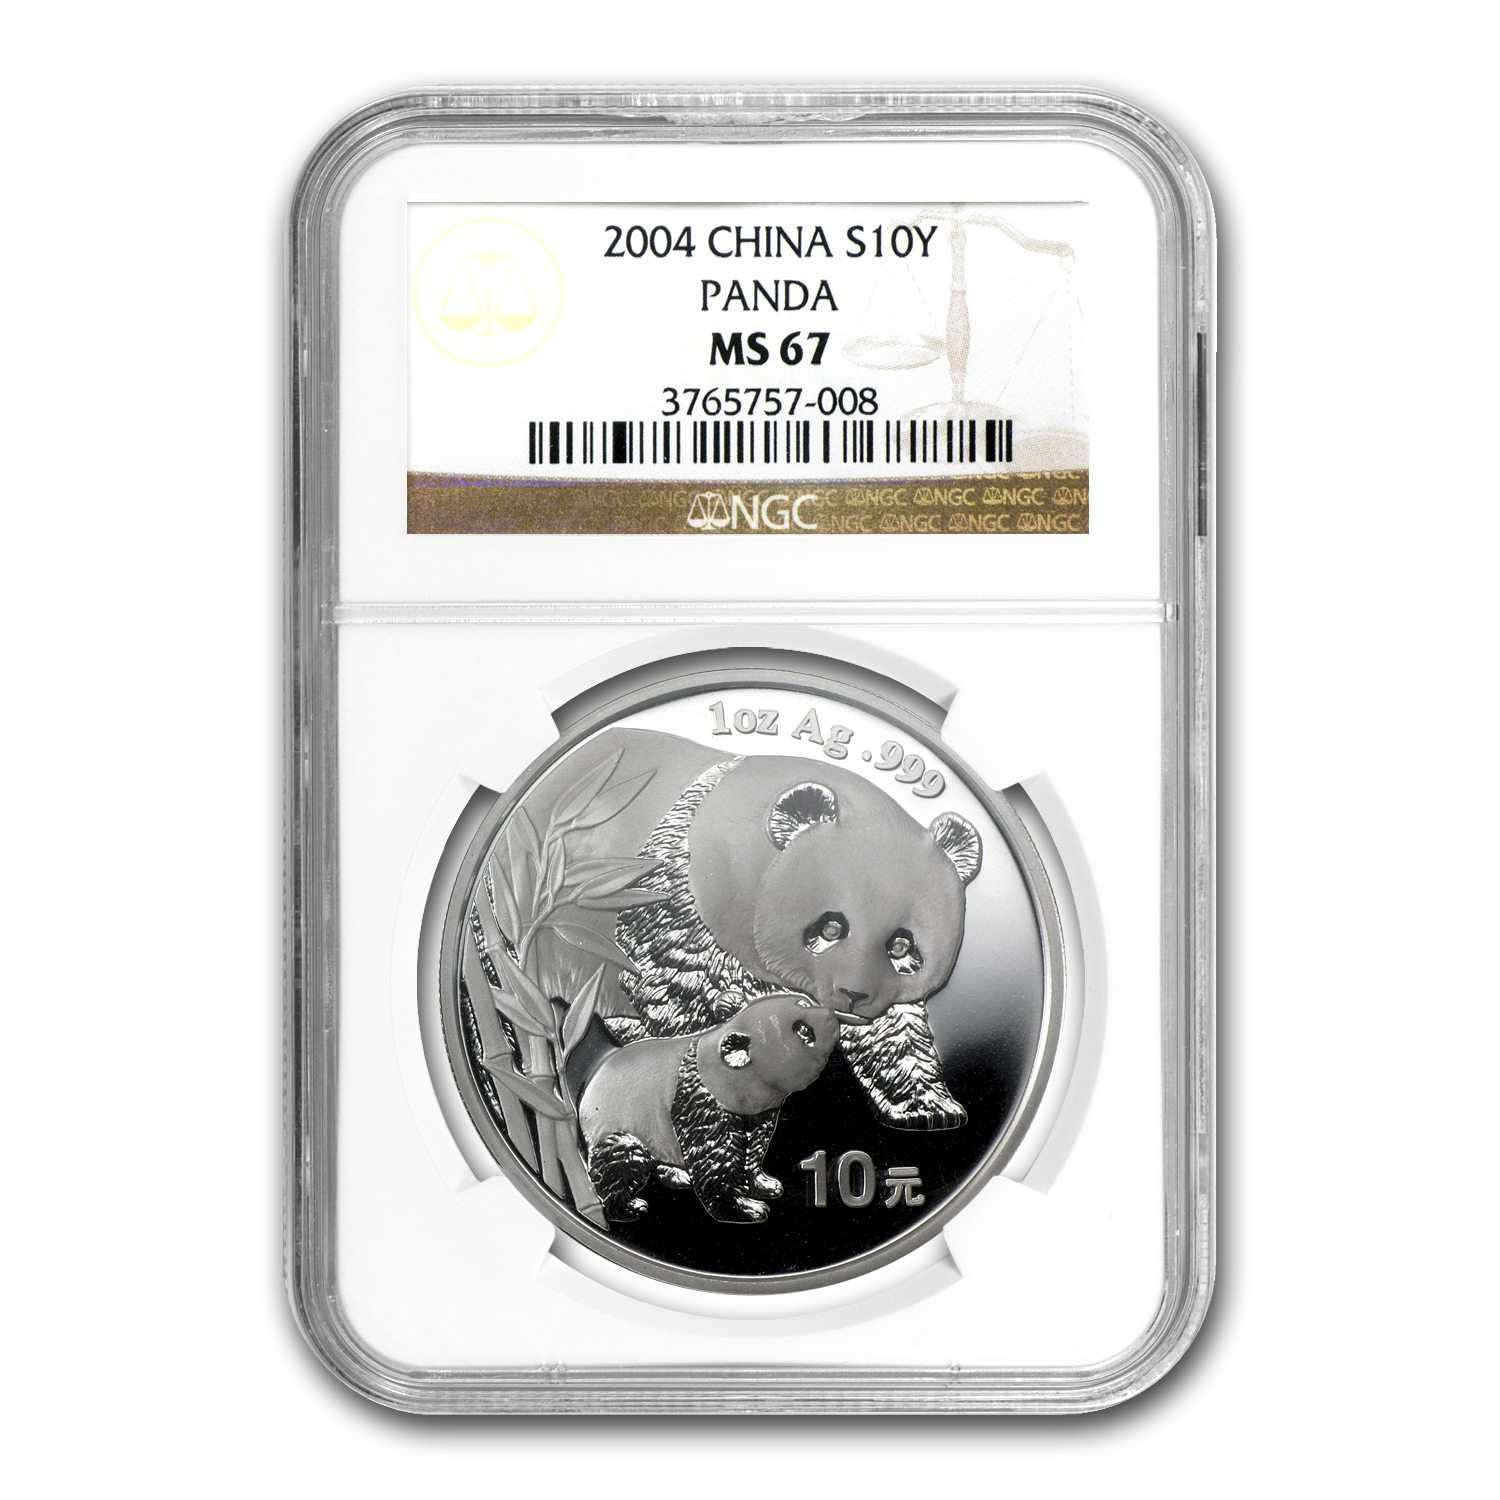 2004 China 1 oz Silver Panda MS-67 NGC